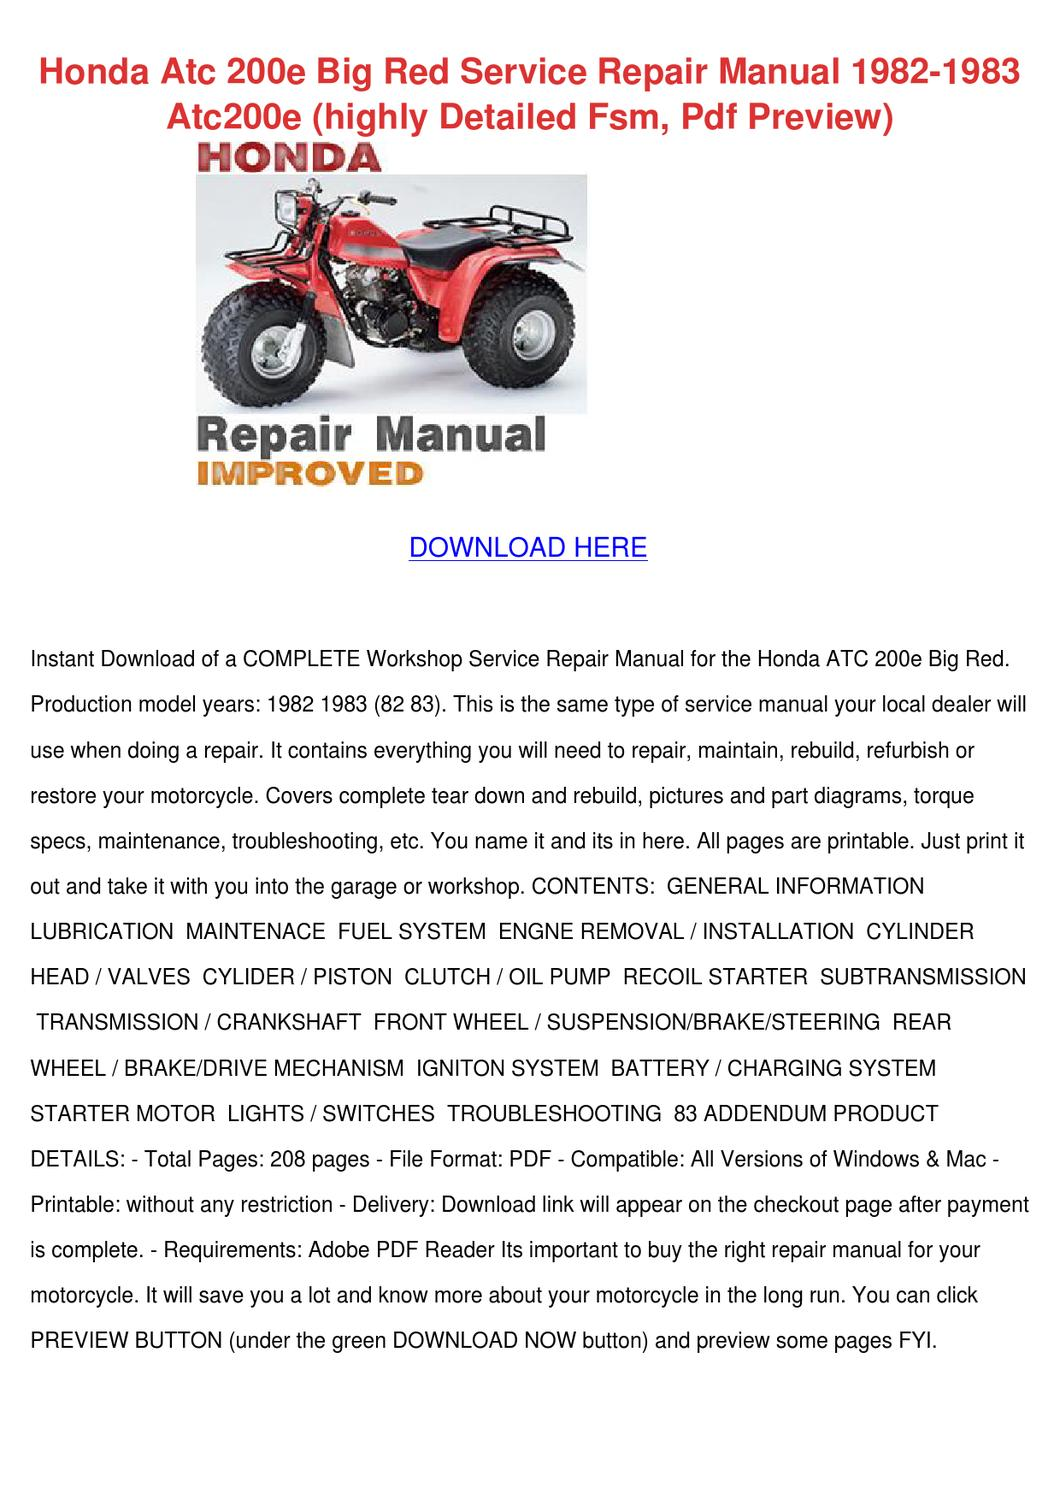 honda big red service manual